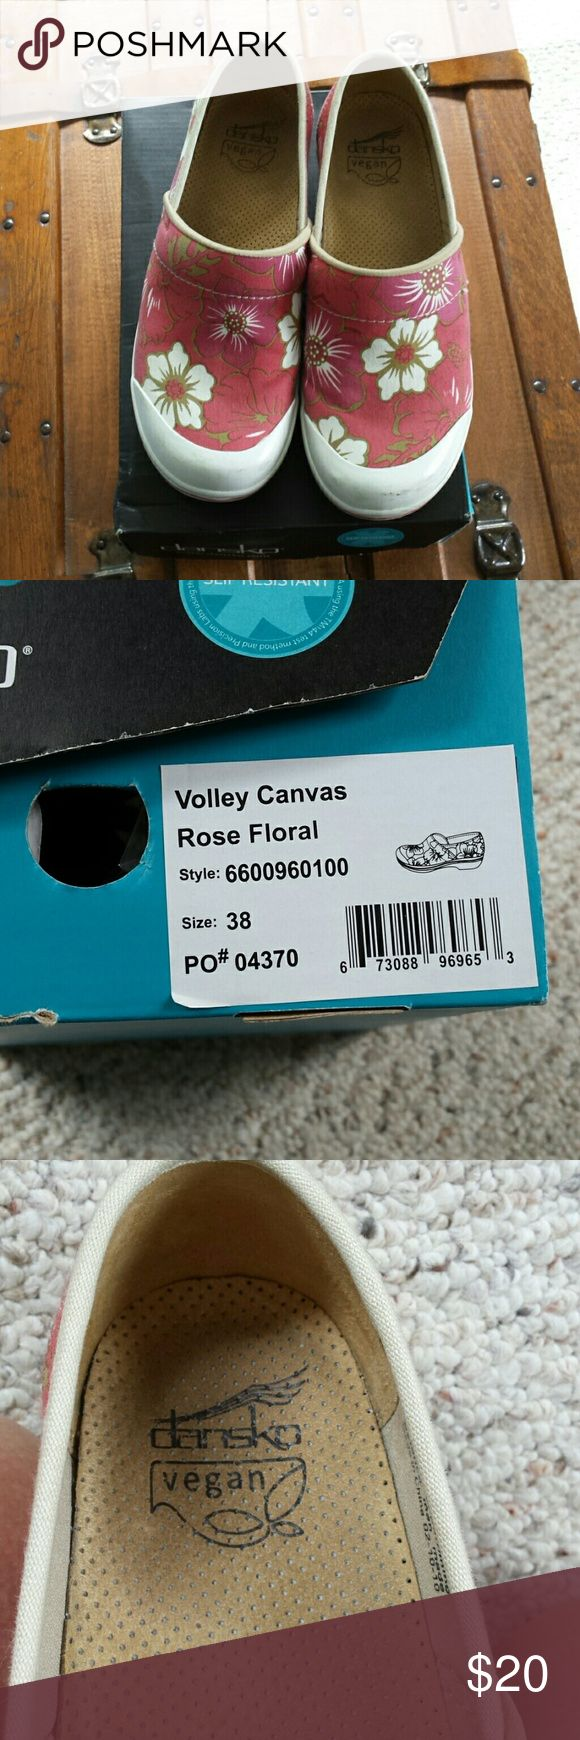 Vegan dansko clogs Volley canvas rose floral dansko shoes. Rubber soles, like keds sneakers! Scuffed. Can be cleaned by cobbler. Coral/rose/dull pink color. Fun to wear in any casual setting. Stained insole. dansko Shoes